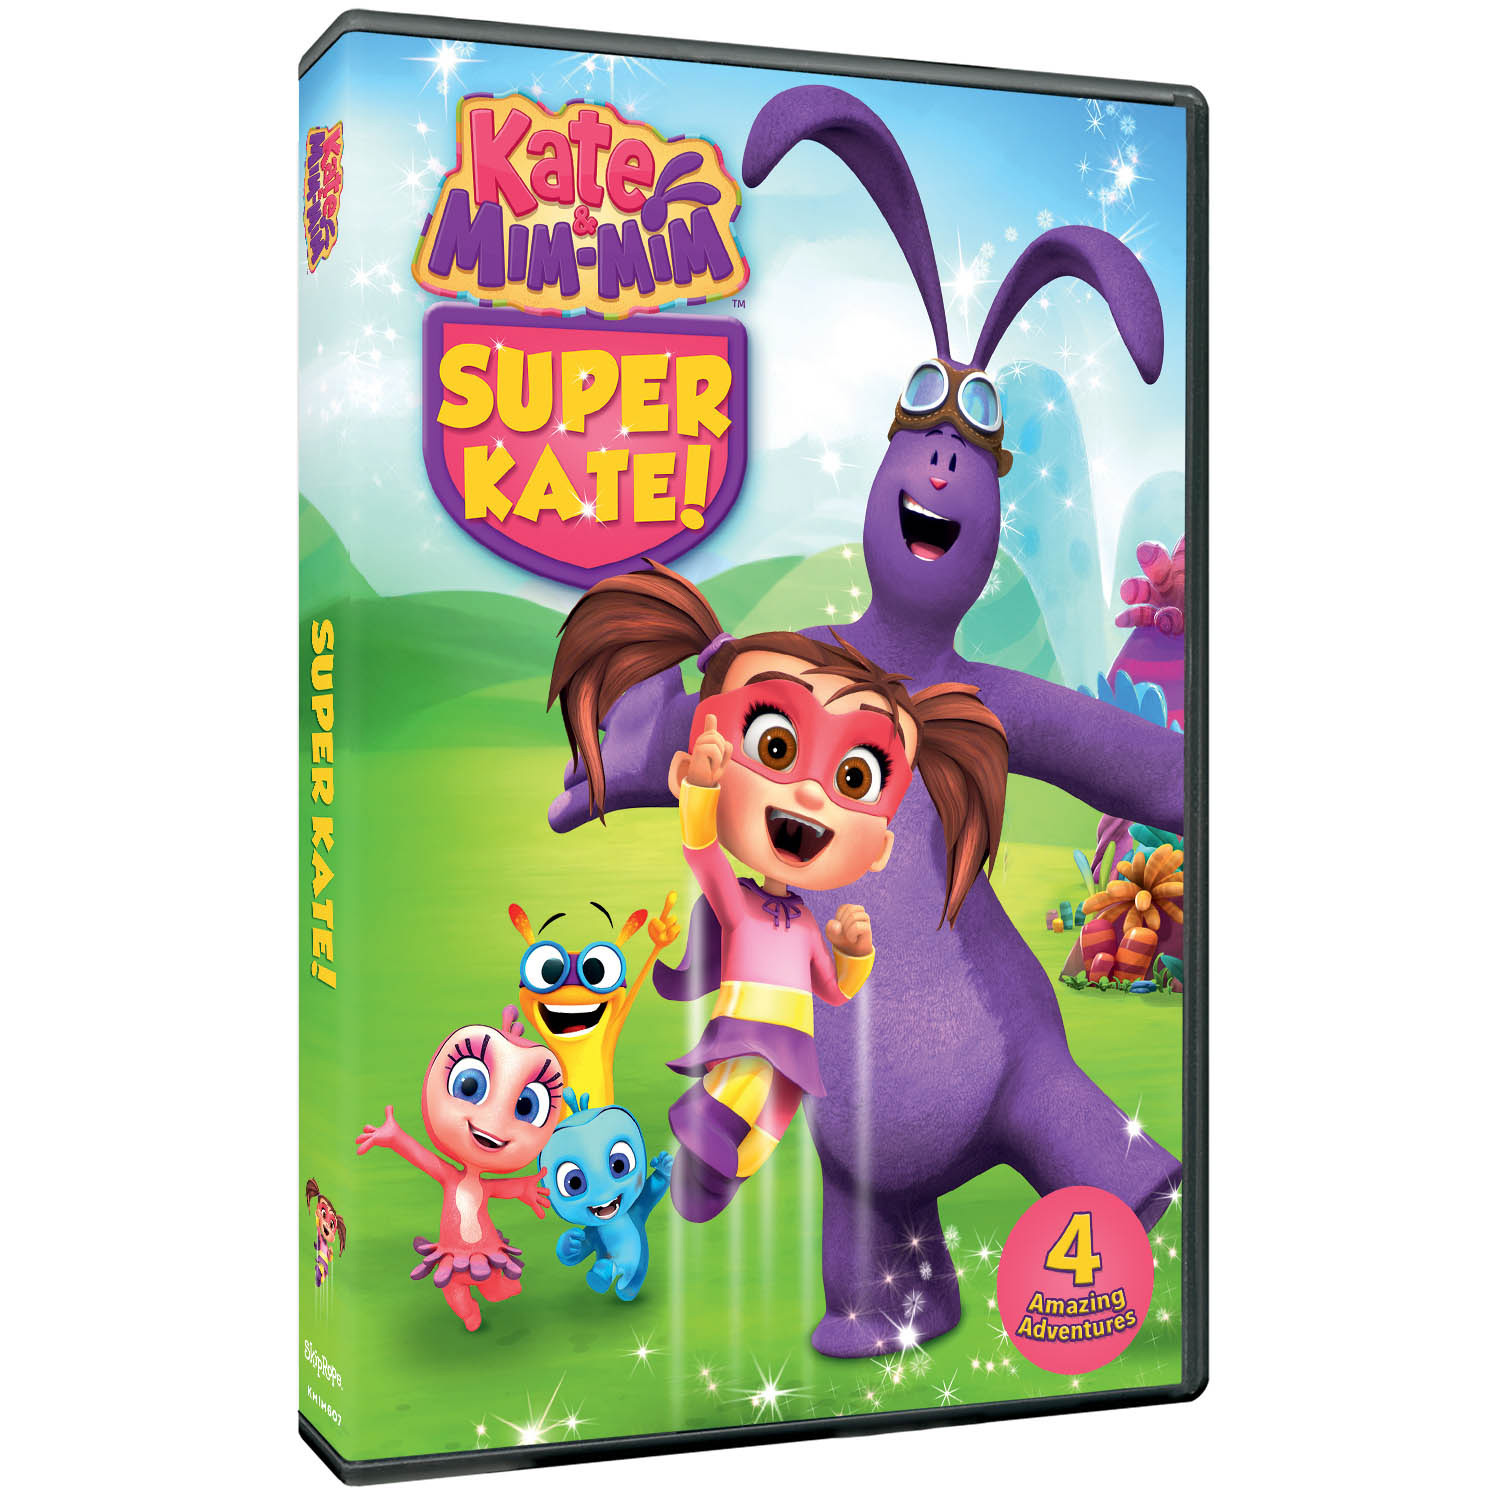 Kate Mim Mim Super Kate Dvd Shop Pbs Org